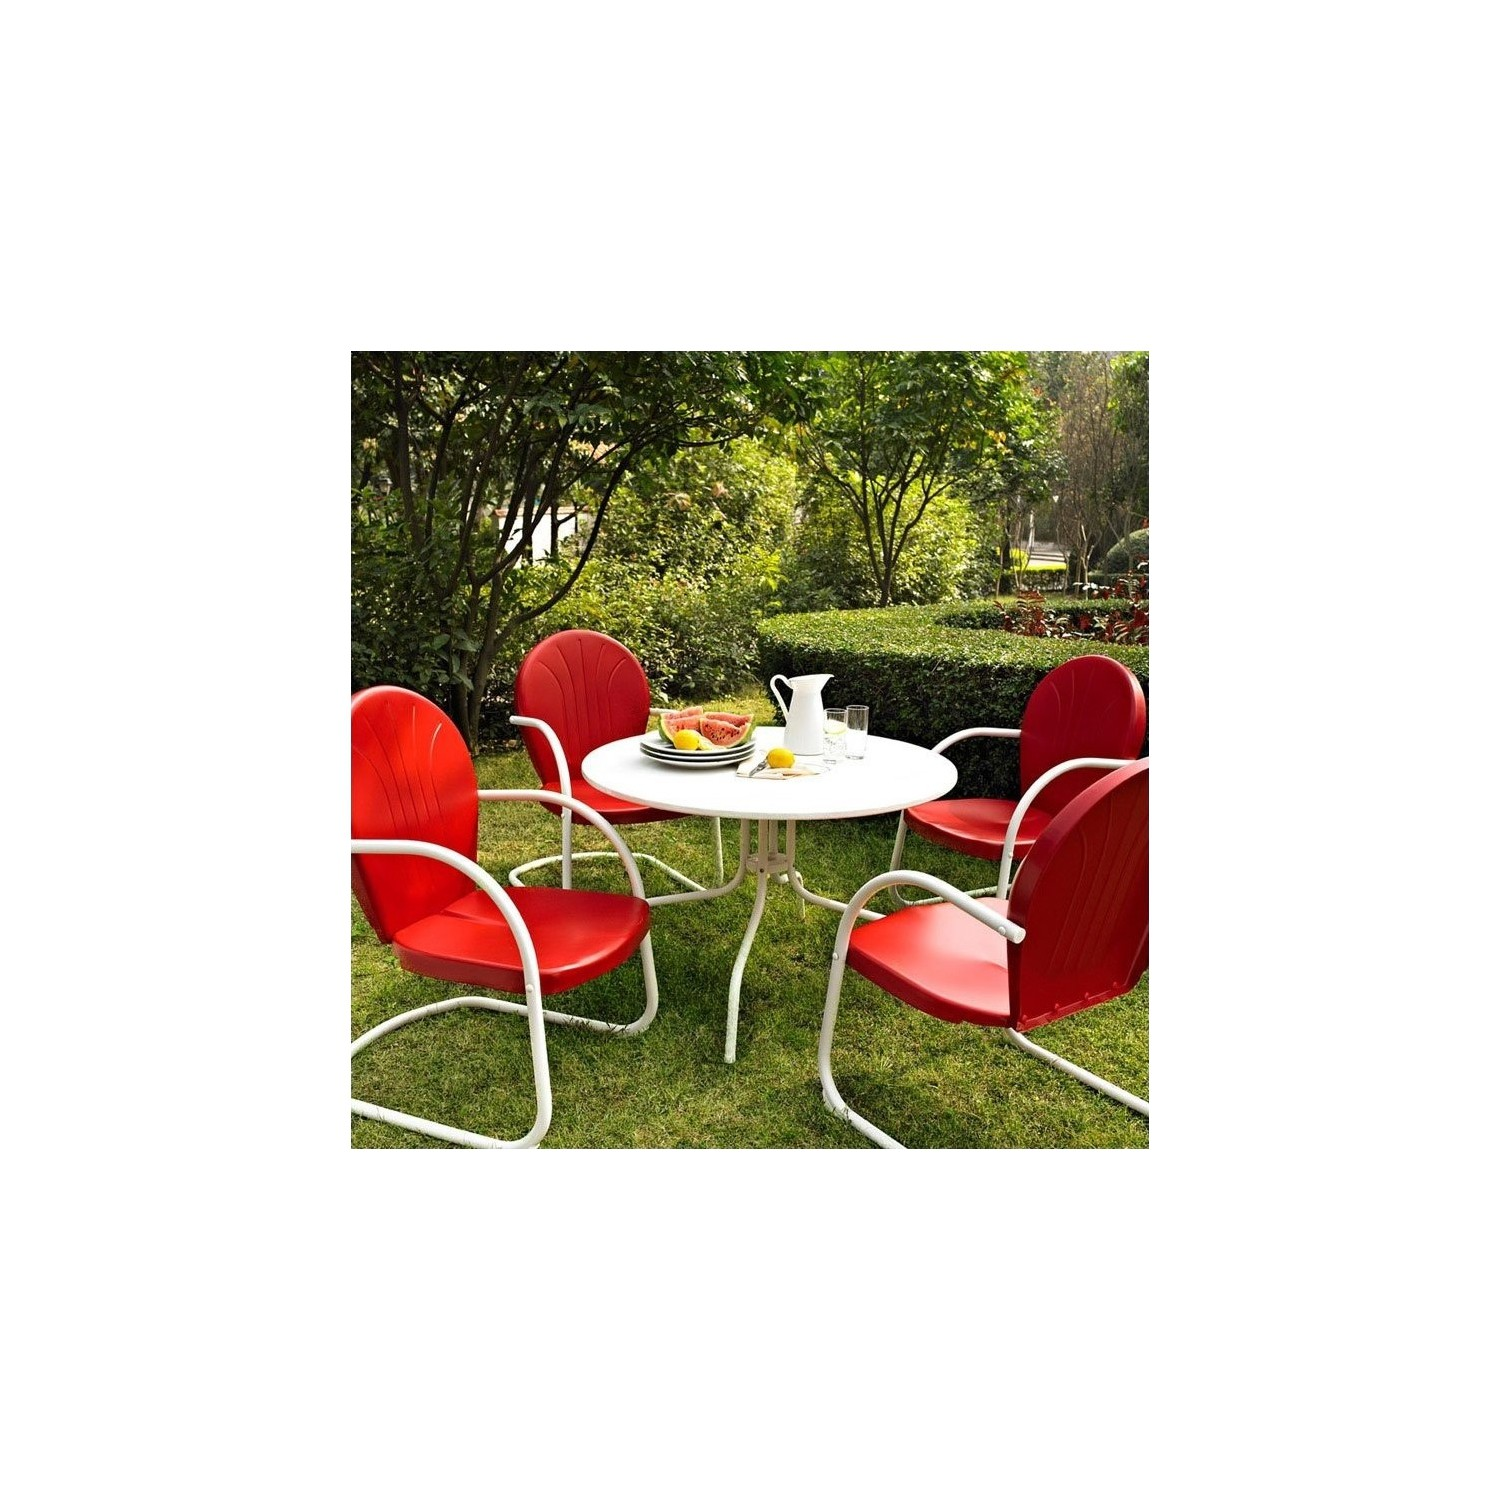 Crosley furniture griffith 5 piece metal patio dining set in red online only